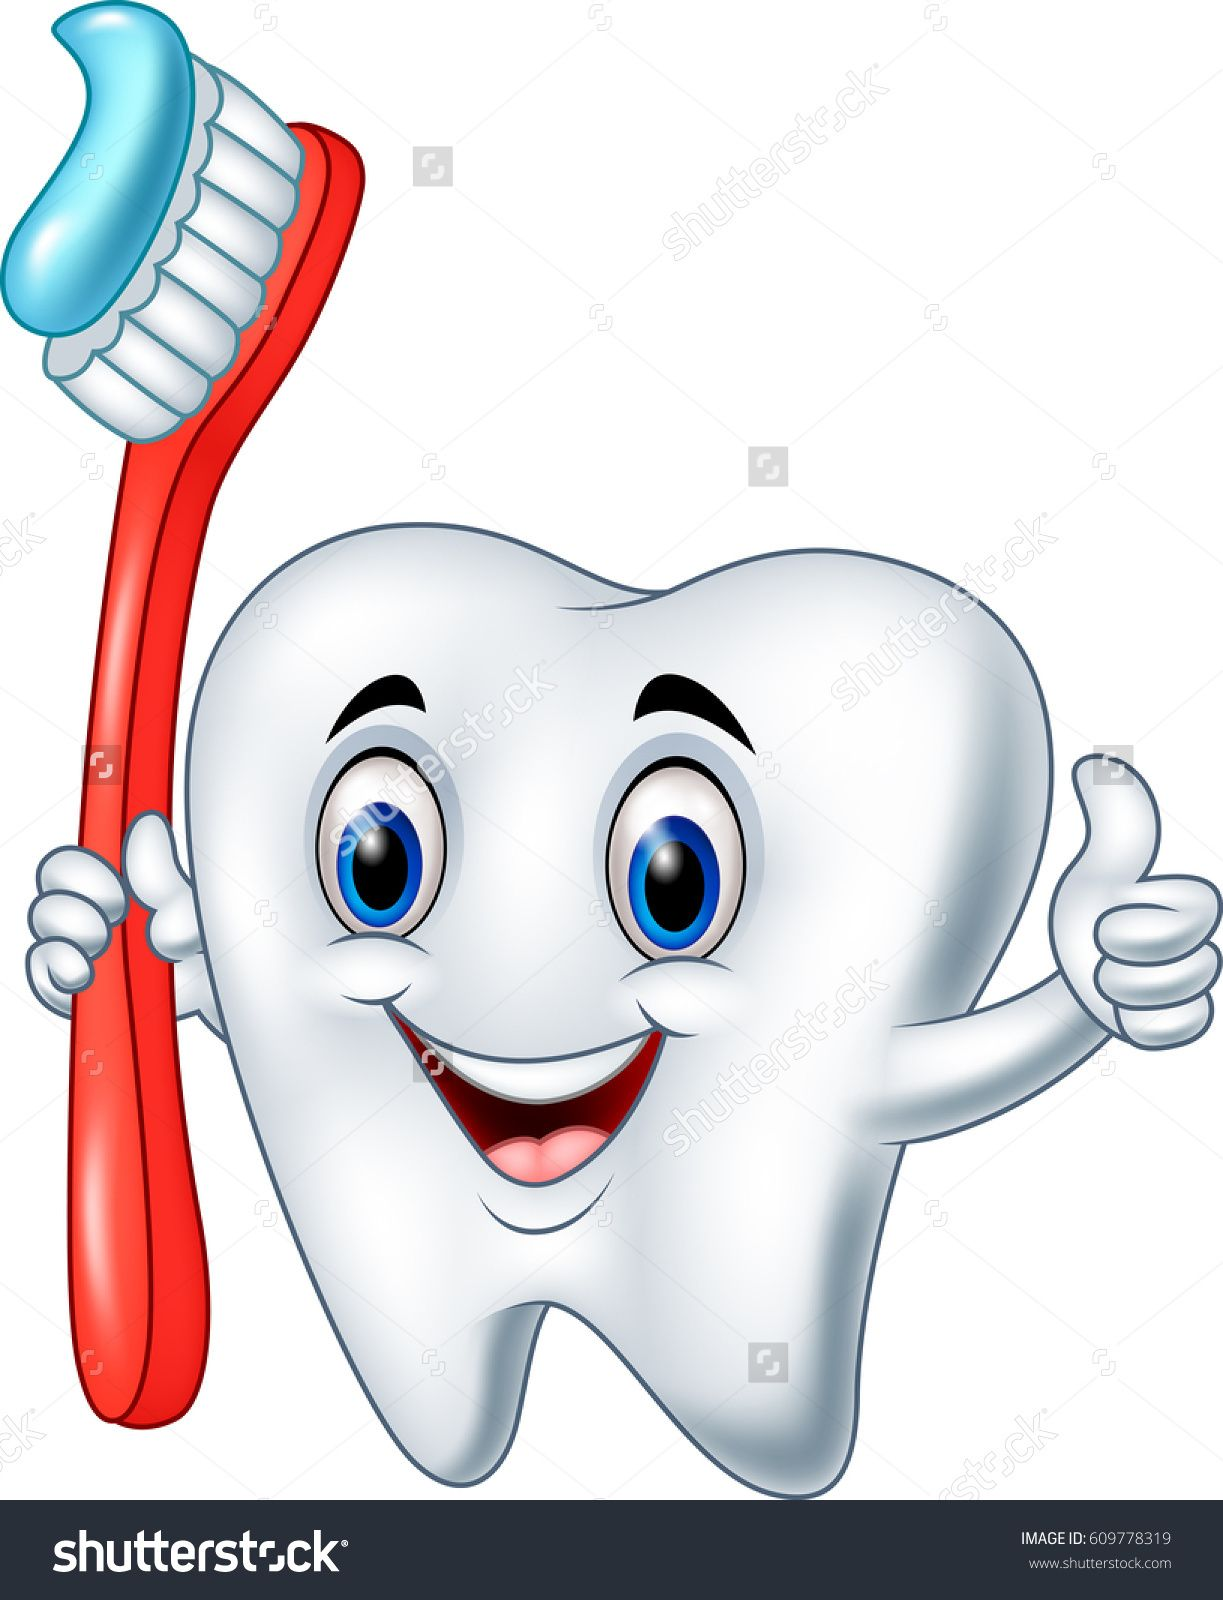 medium resolution of cartoon tooth holding a tooth brush giving thumb up